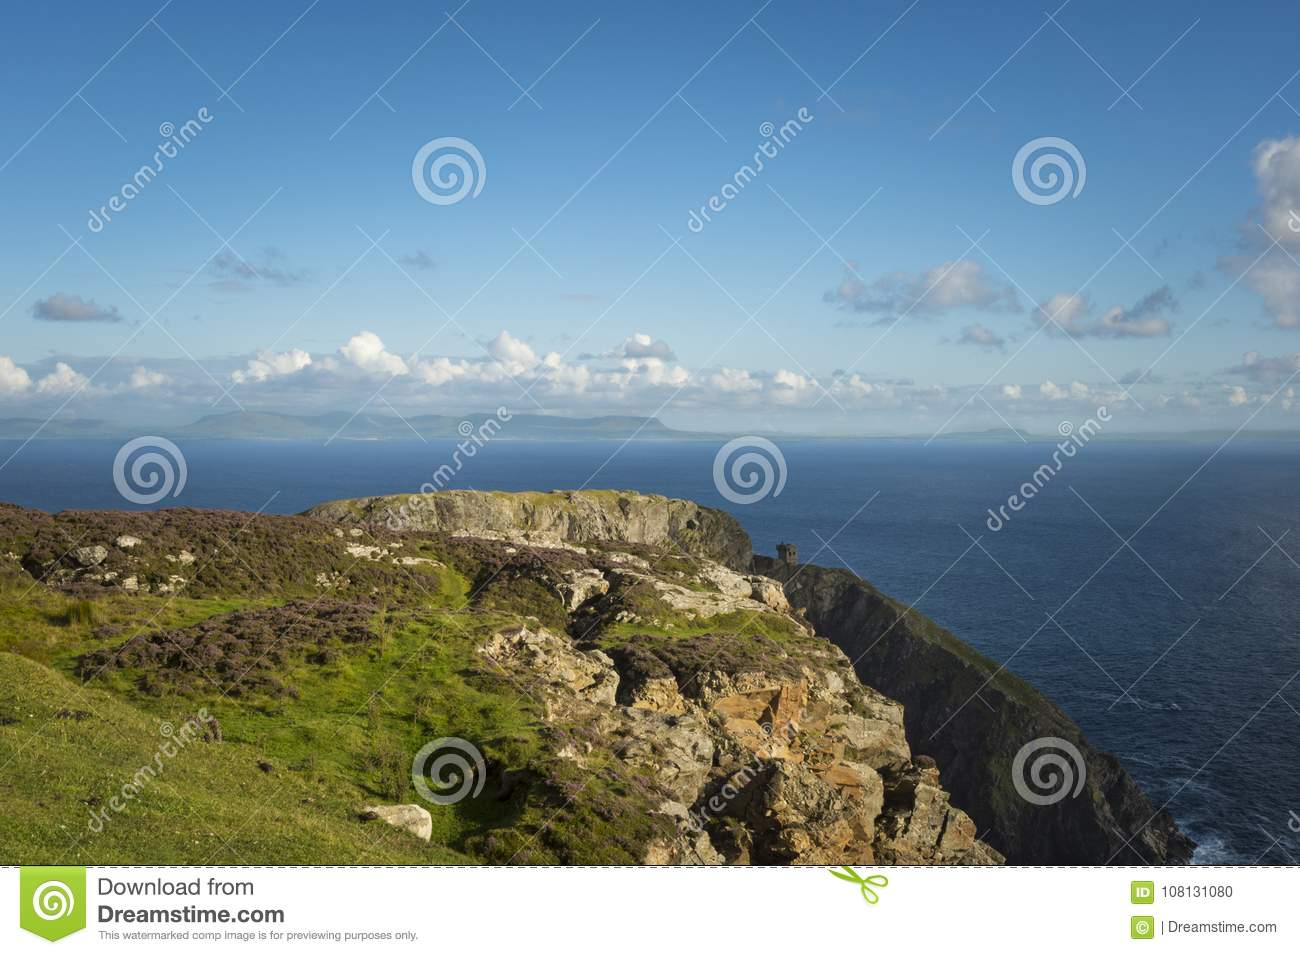 A cliff at Sliabh Liag, Co. Donegal on a sunny day